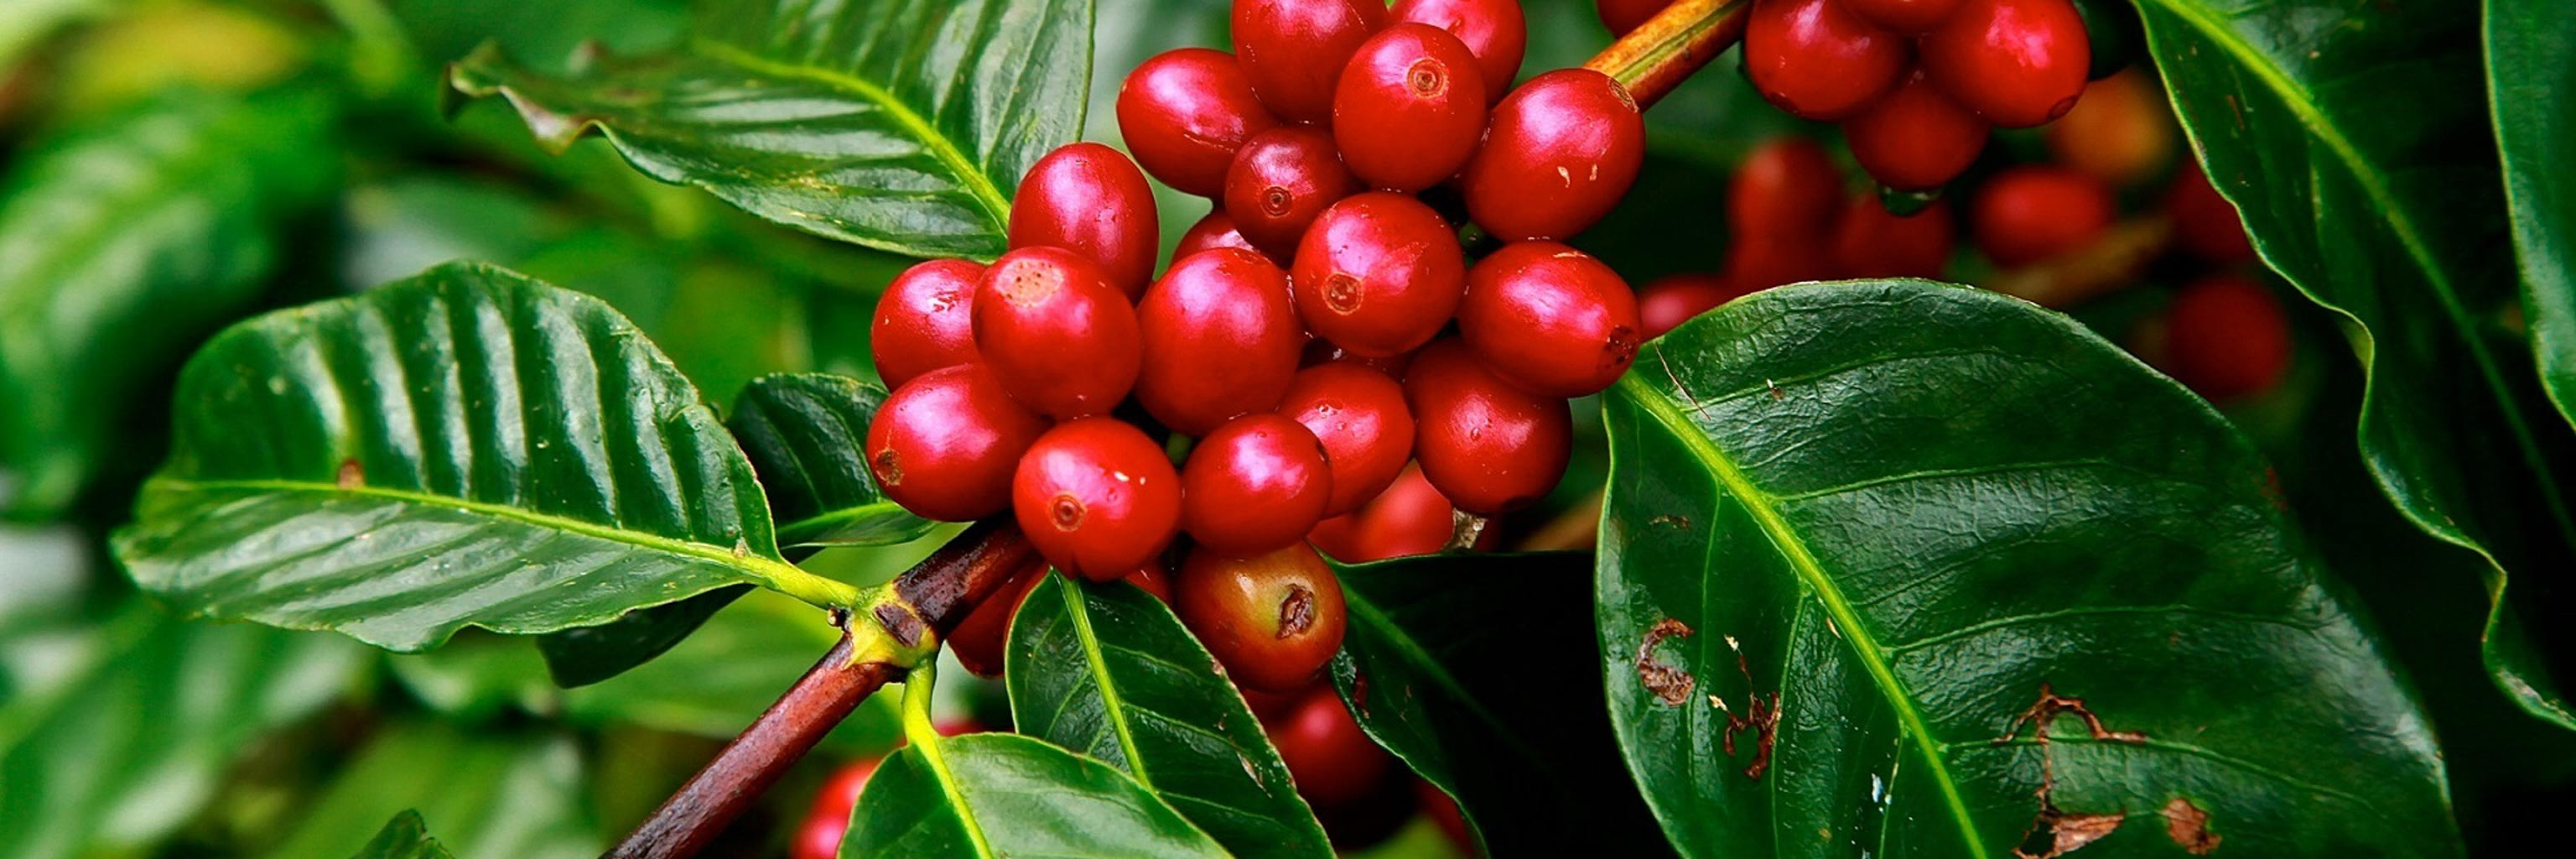 Coffee beans on a plant